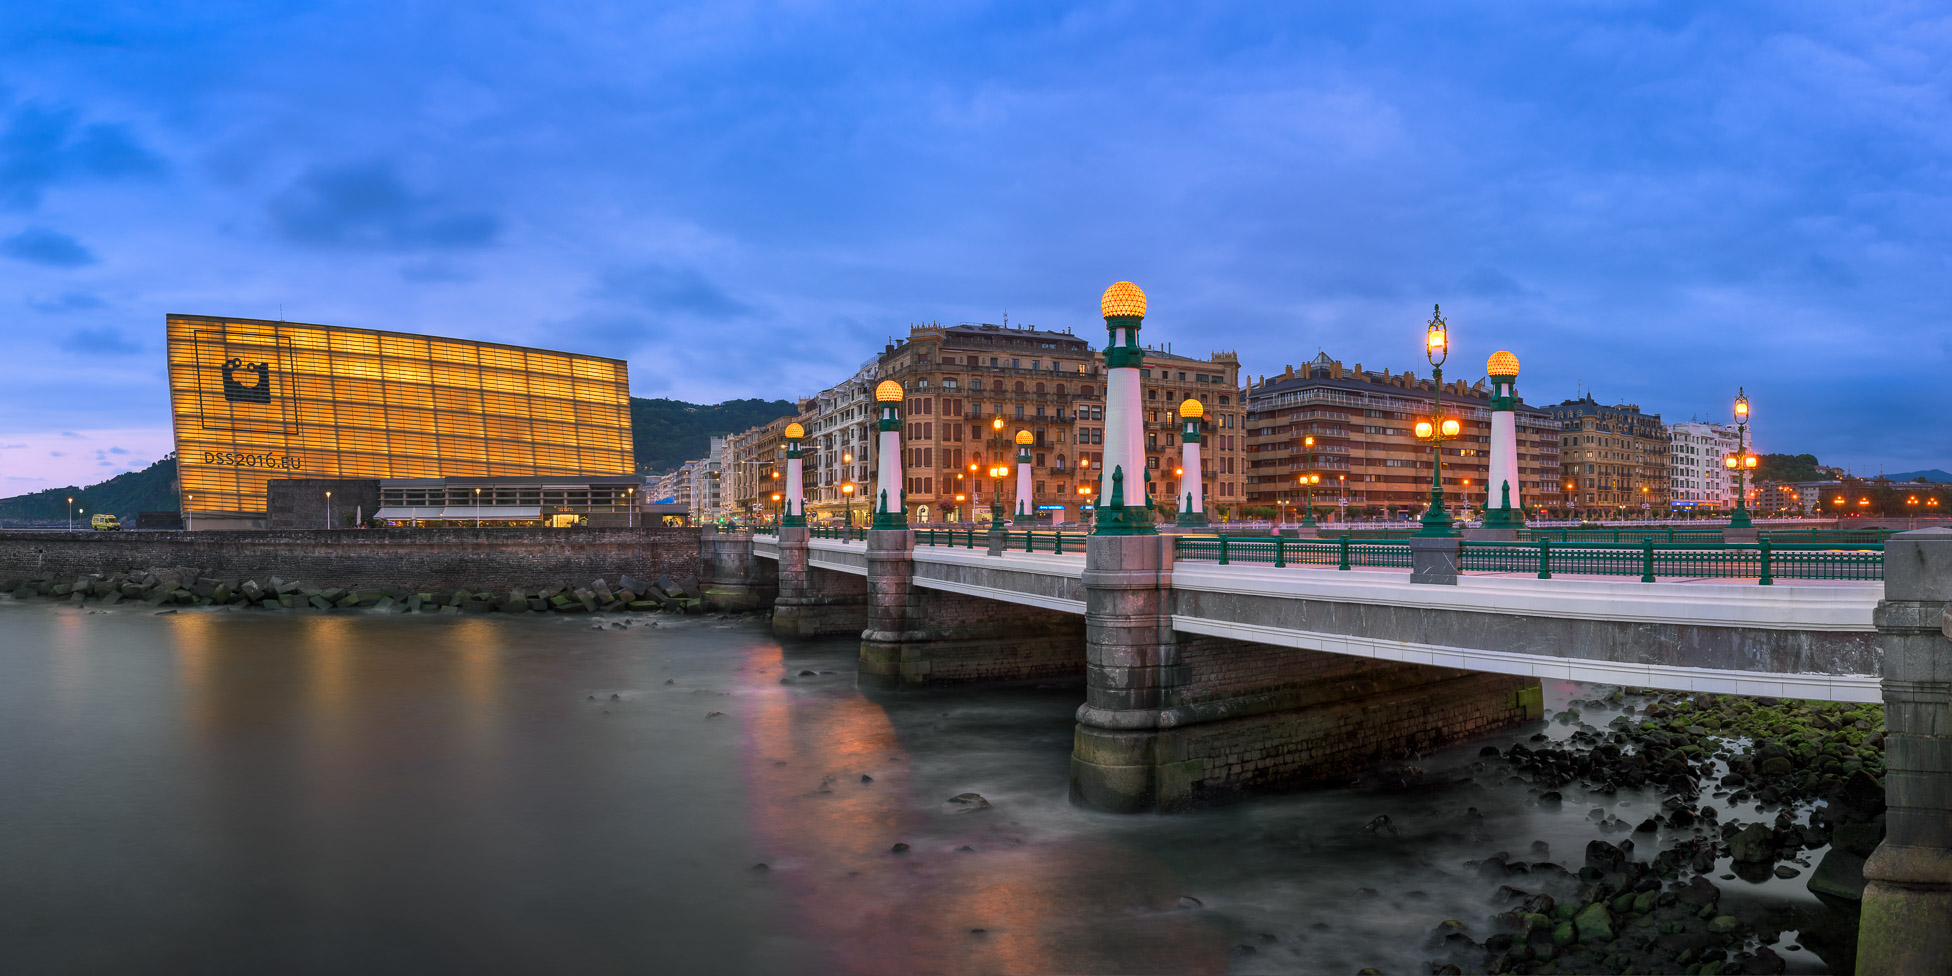 Kursaal Bridge and Urumea River Embankment in the Evening, San Sebastian, Spain